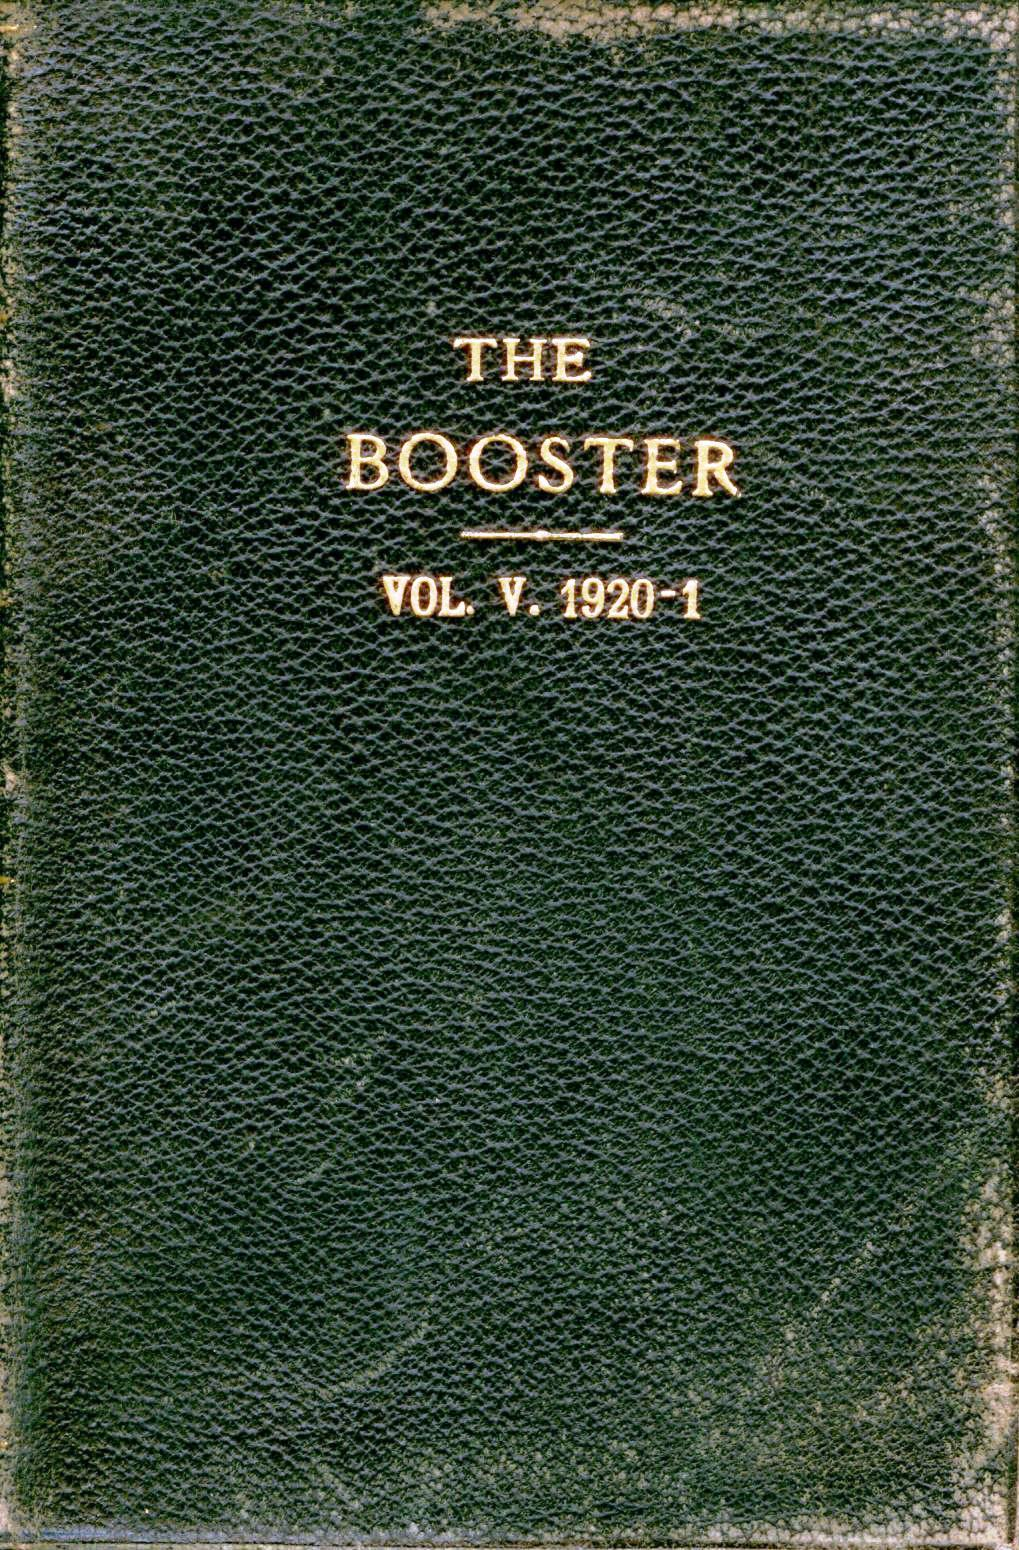 100-Ton Booster.  Volume 5, 1920-21